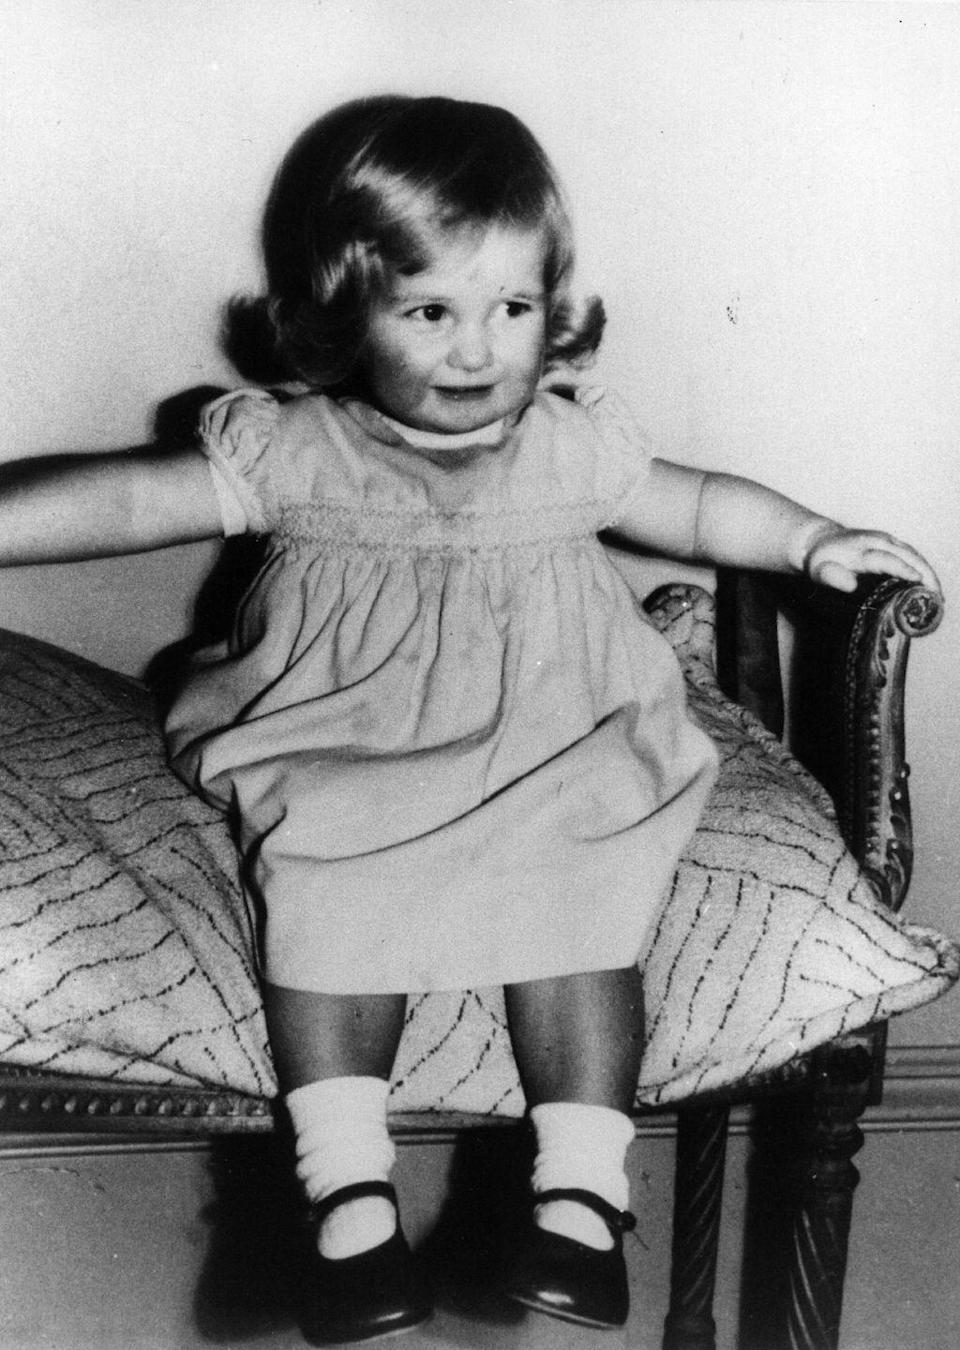 "<p>Princess Diana as a chubby-cheeked two-year-old at Park House, Sandringham, Norfolk. Early in her childhood, she and her family lived in a rented property on the <a href=""http://www.bbc.co.uk/news/special/politics97/diana/ob-child.html"" rel=""nofollow noopener"" target=""_blank"" data-ylk=""slk:Queen's estate"" class=""link rapid-noclick-resp"">Queen's estate</a>.</p>"